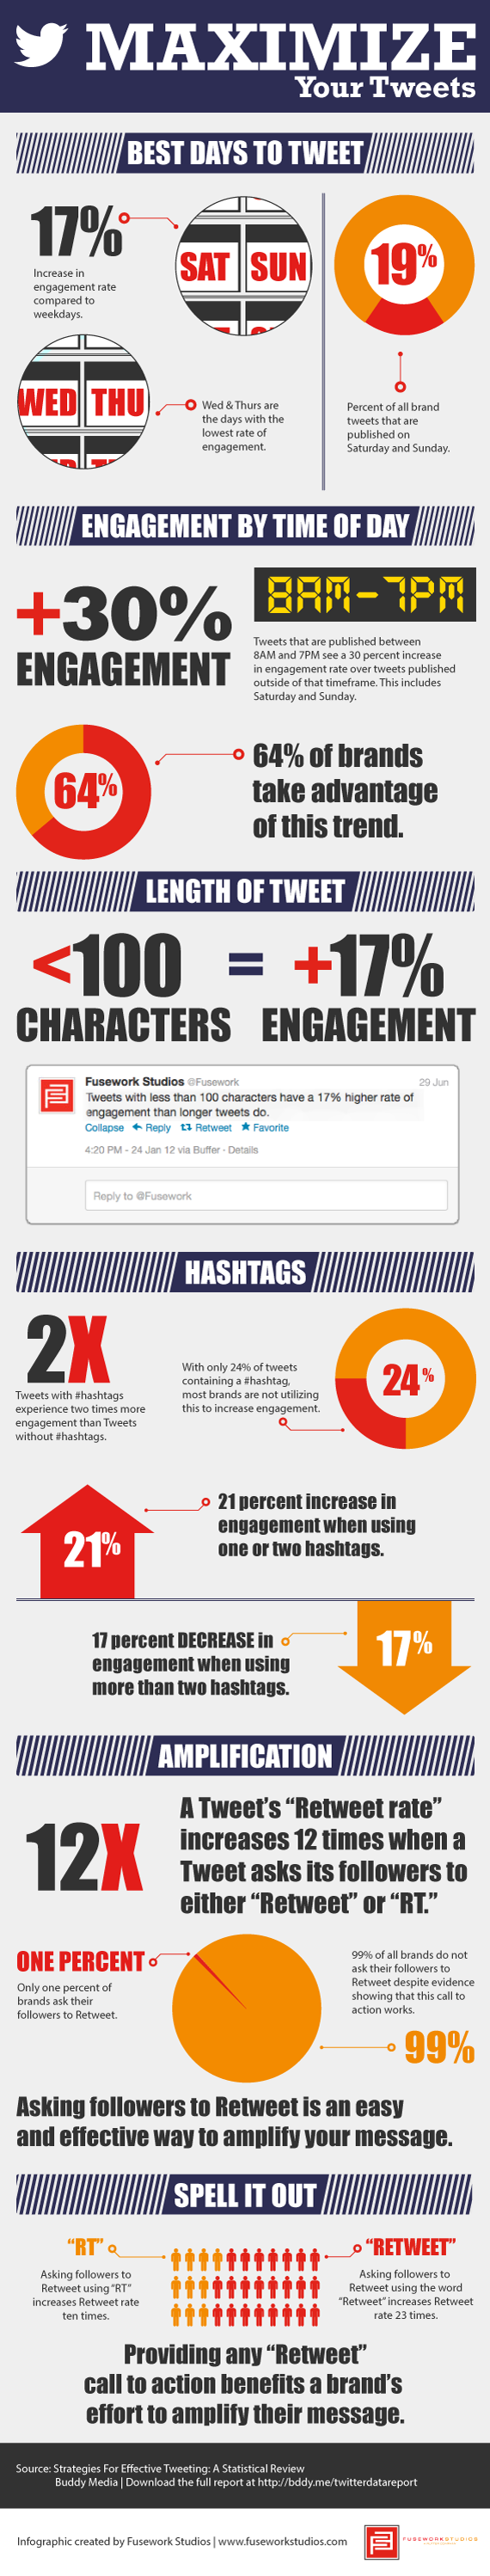 Infographic: How to get the max from your Tweets